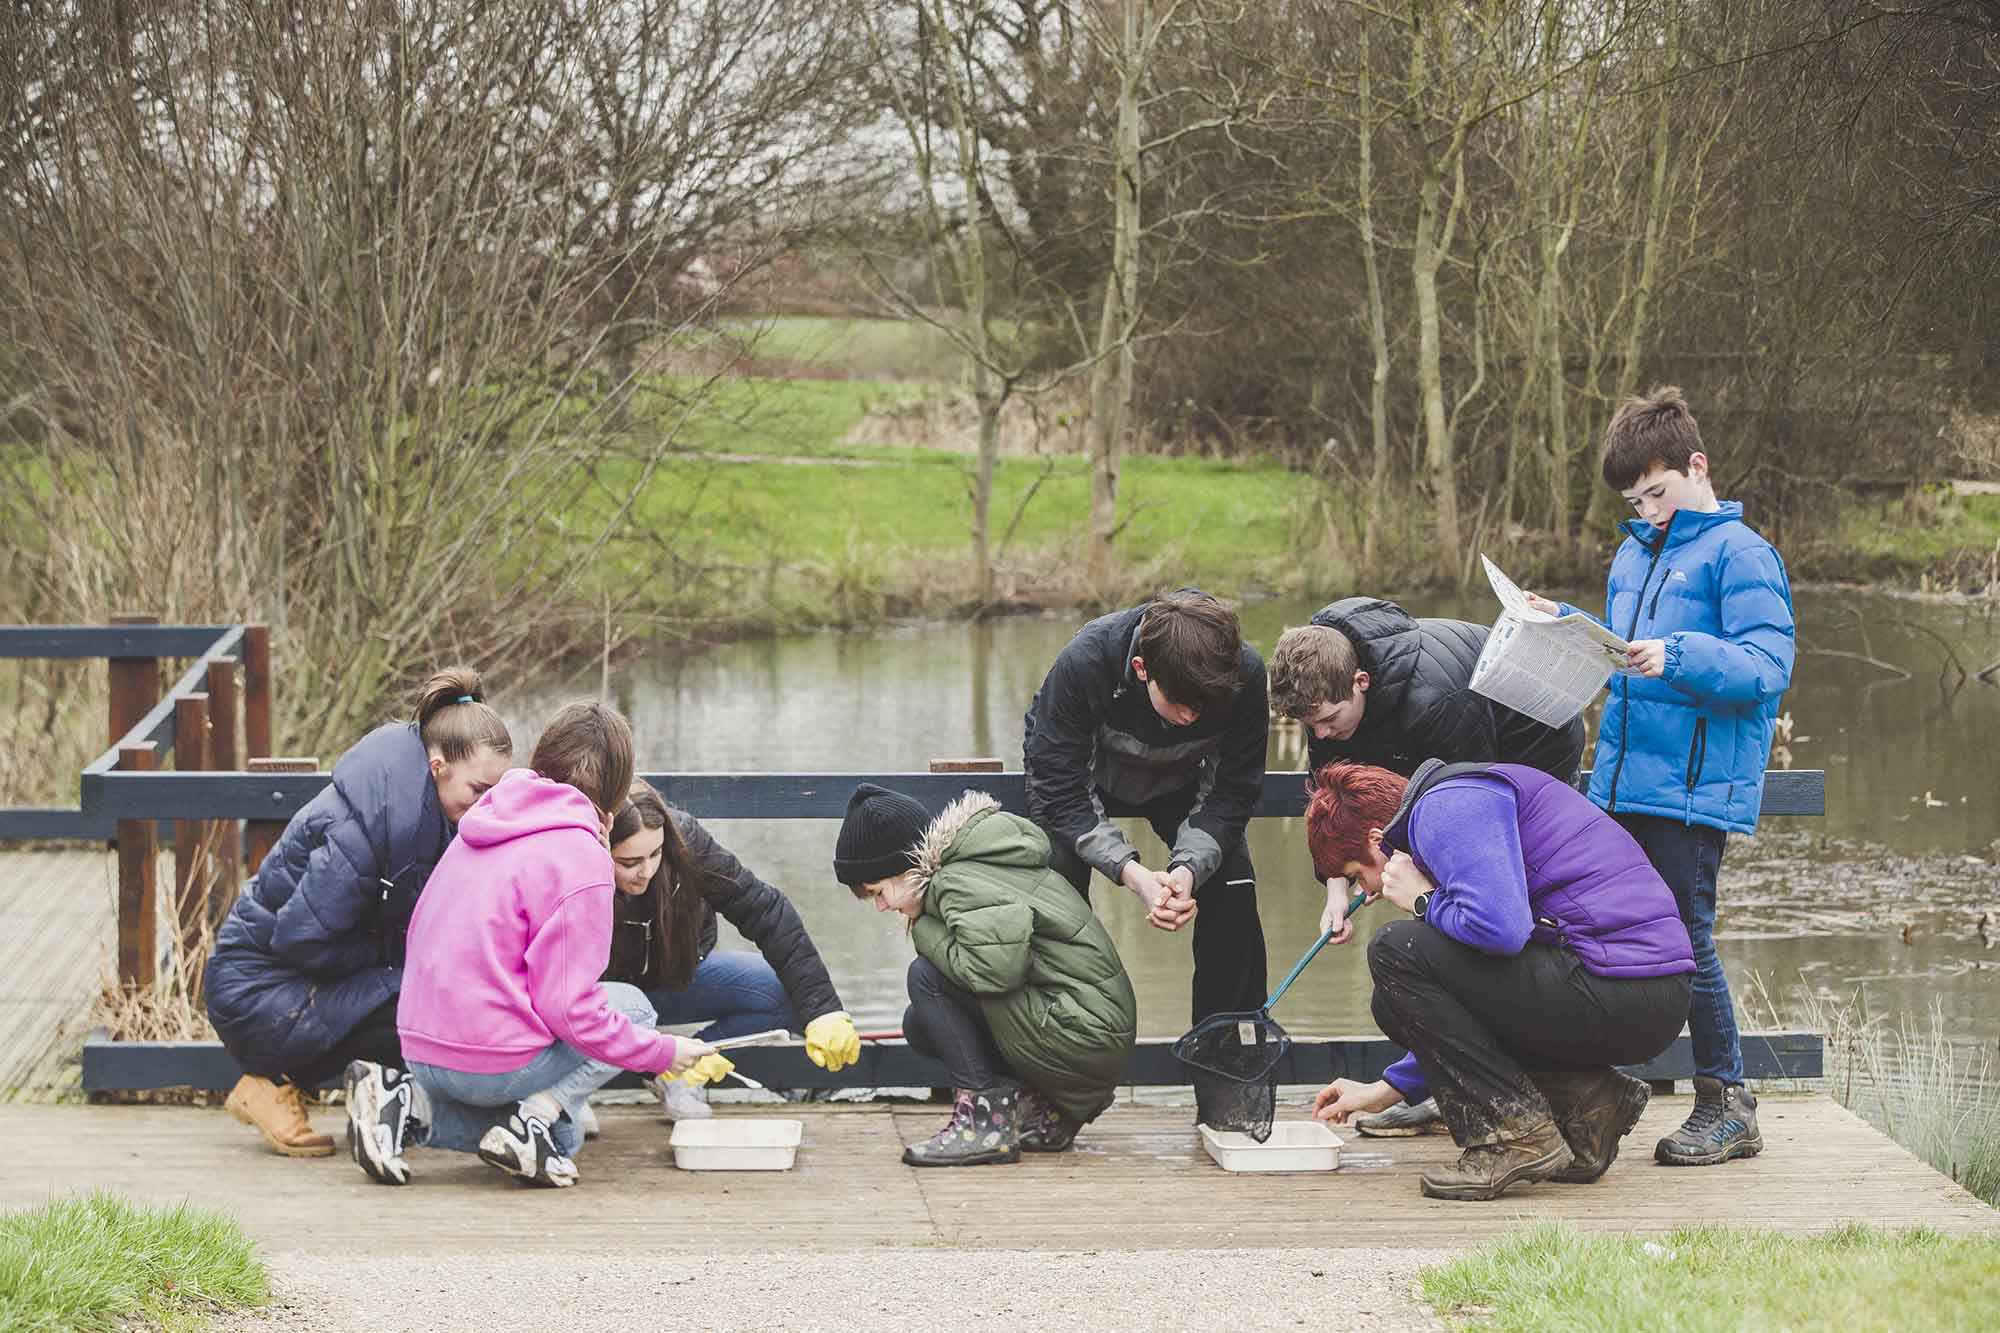 Family friendly activities from The Parks Trust this half term